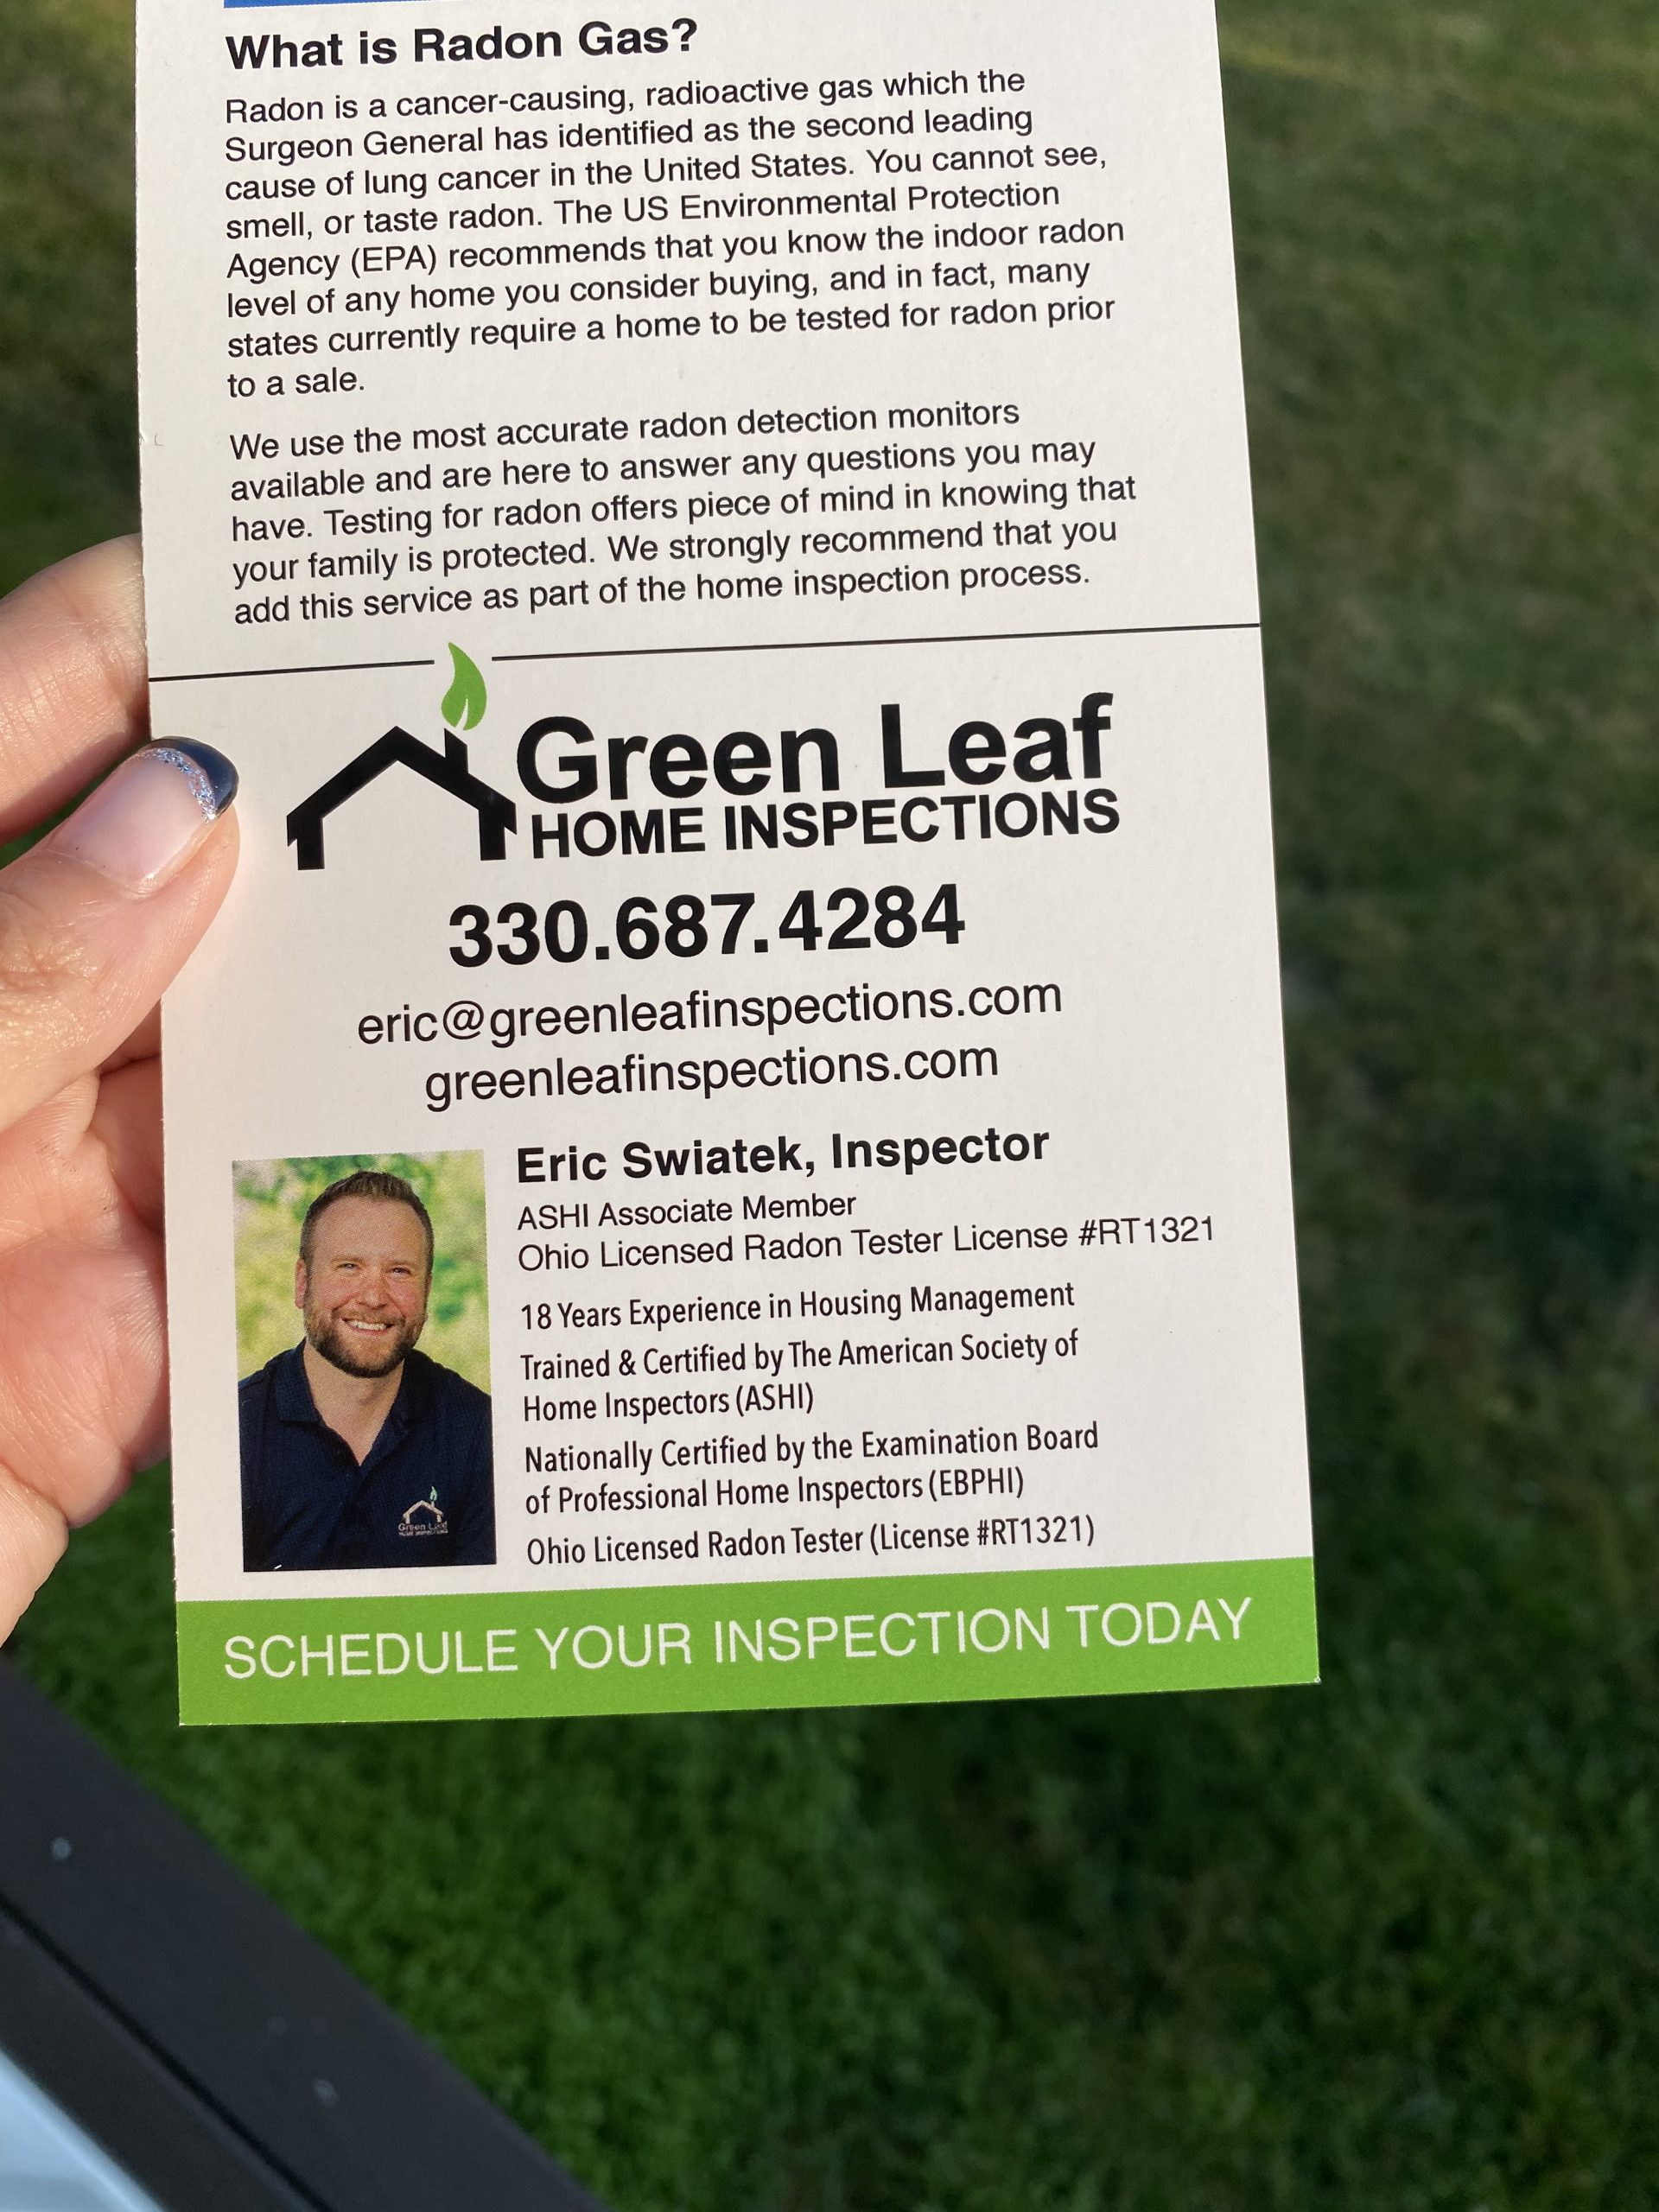 It was another beautiful day to be out visiting real estate agents around Northeast Ohio for Green Leaf Home Inspections on Brokers Tour. It was AMAZING to run into so many familiar faces along the way and share about the services Green Leaf has to offer.